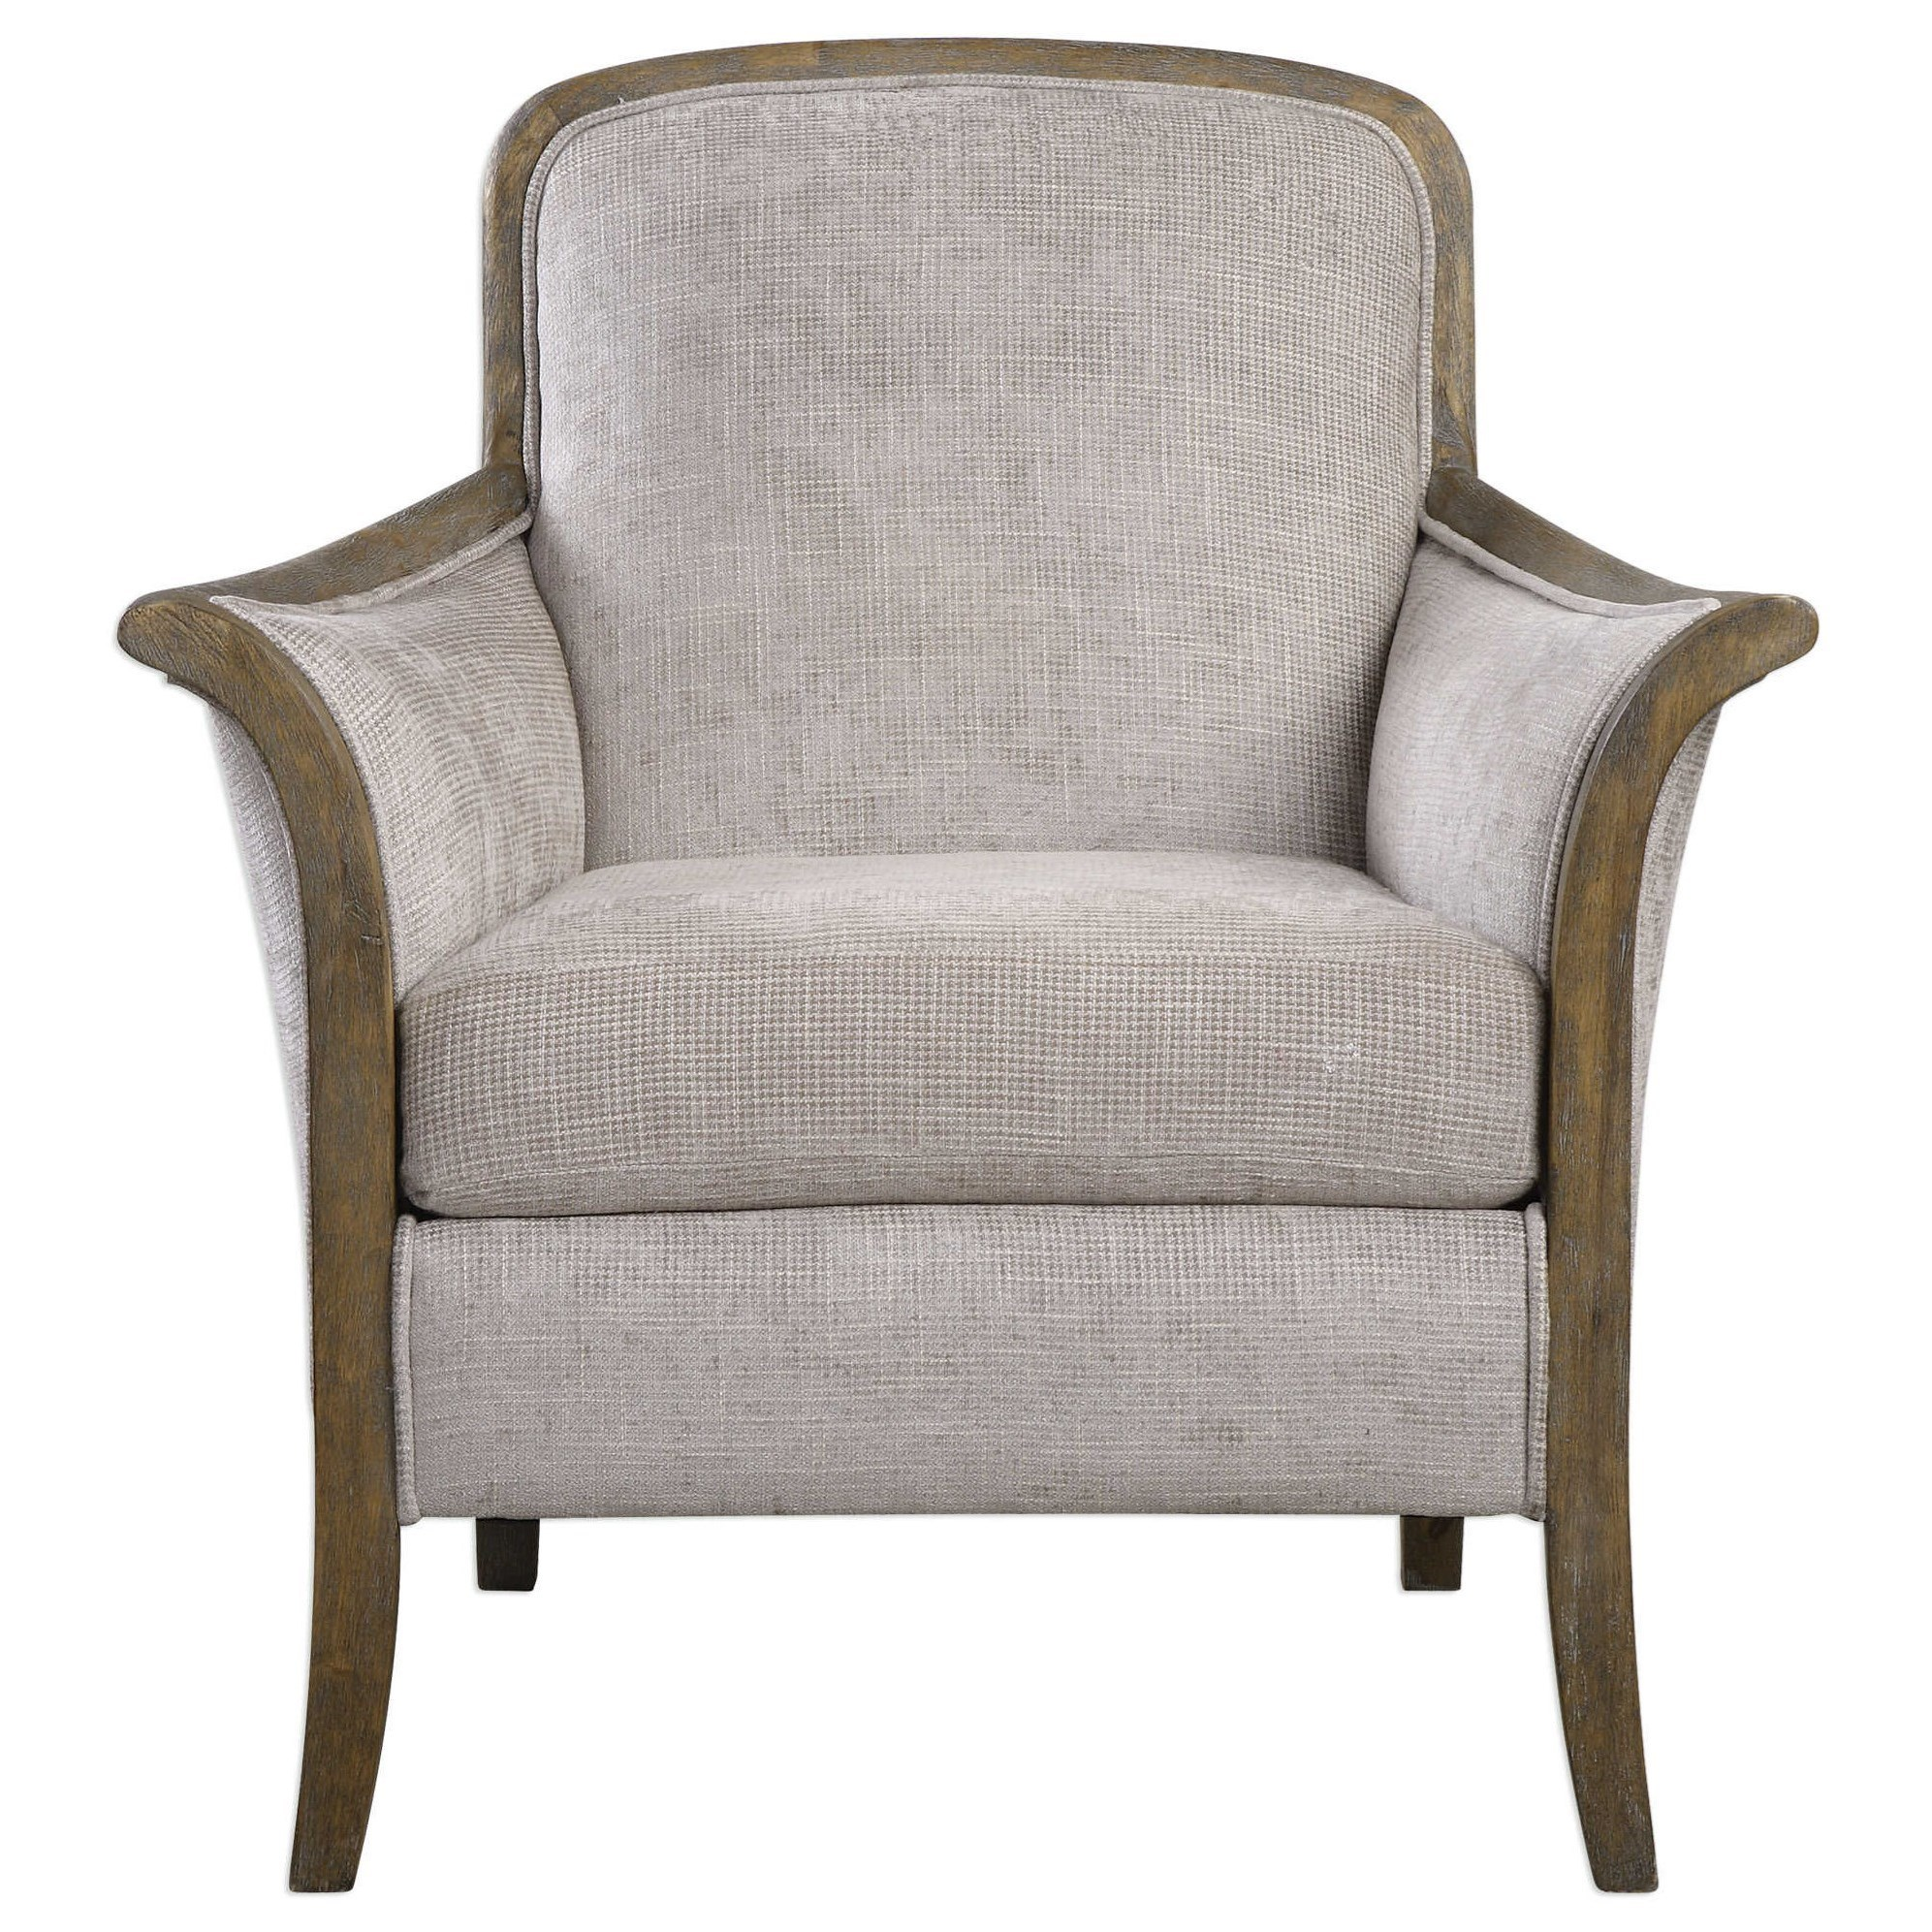 Accent Furniture - Accent Chairs Brittoney Taupe Armchair by Uttermost at O'Dunk & O'Bright Furniture